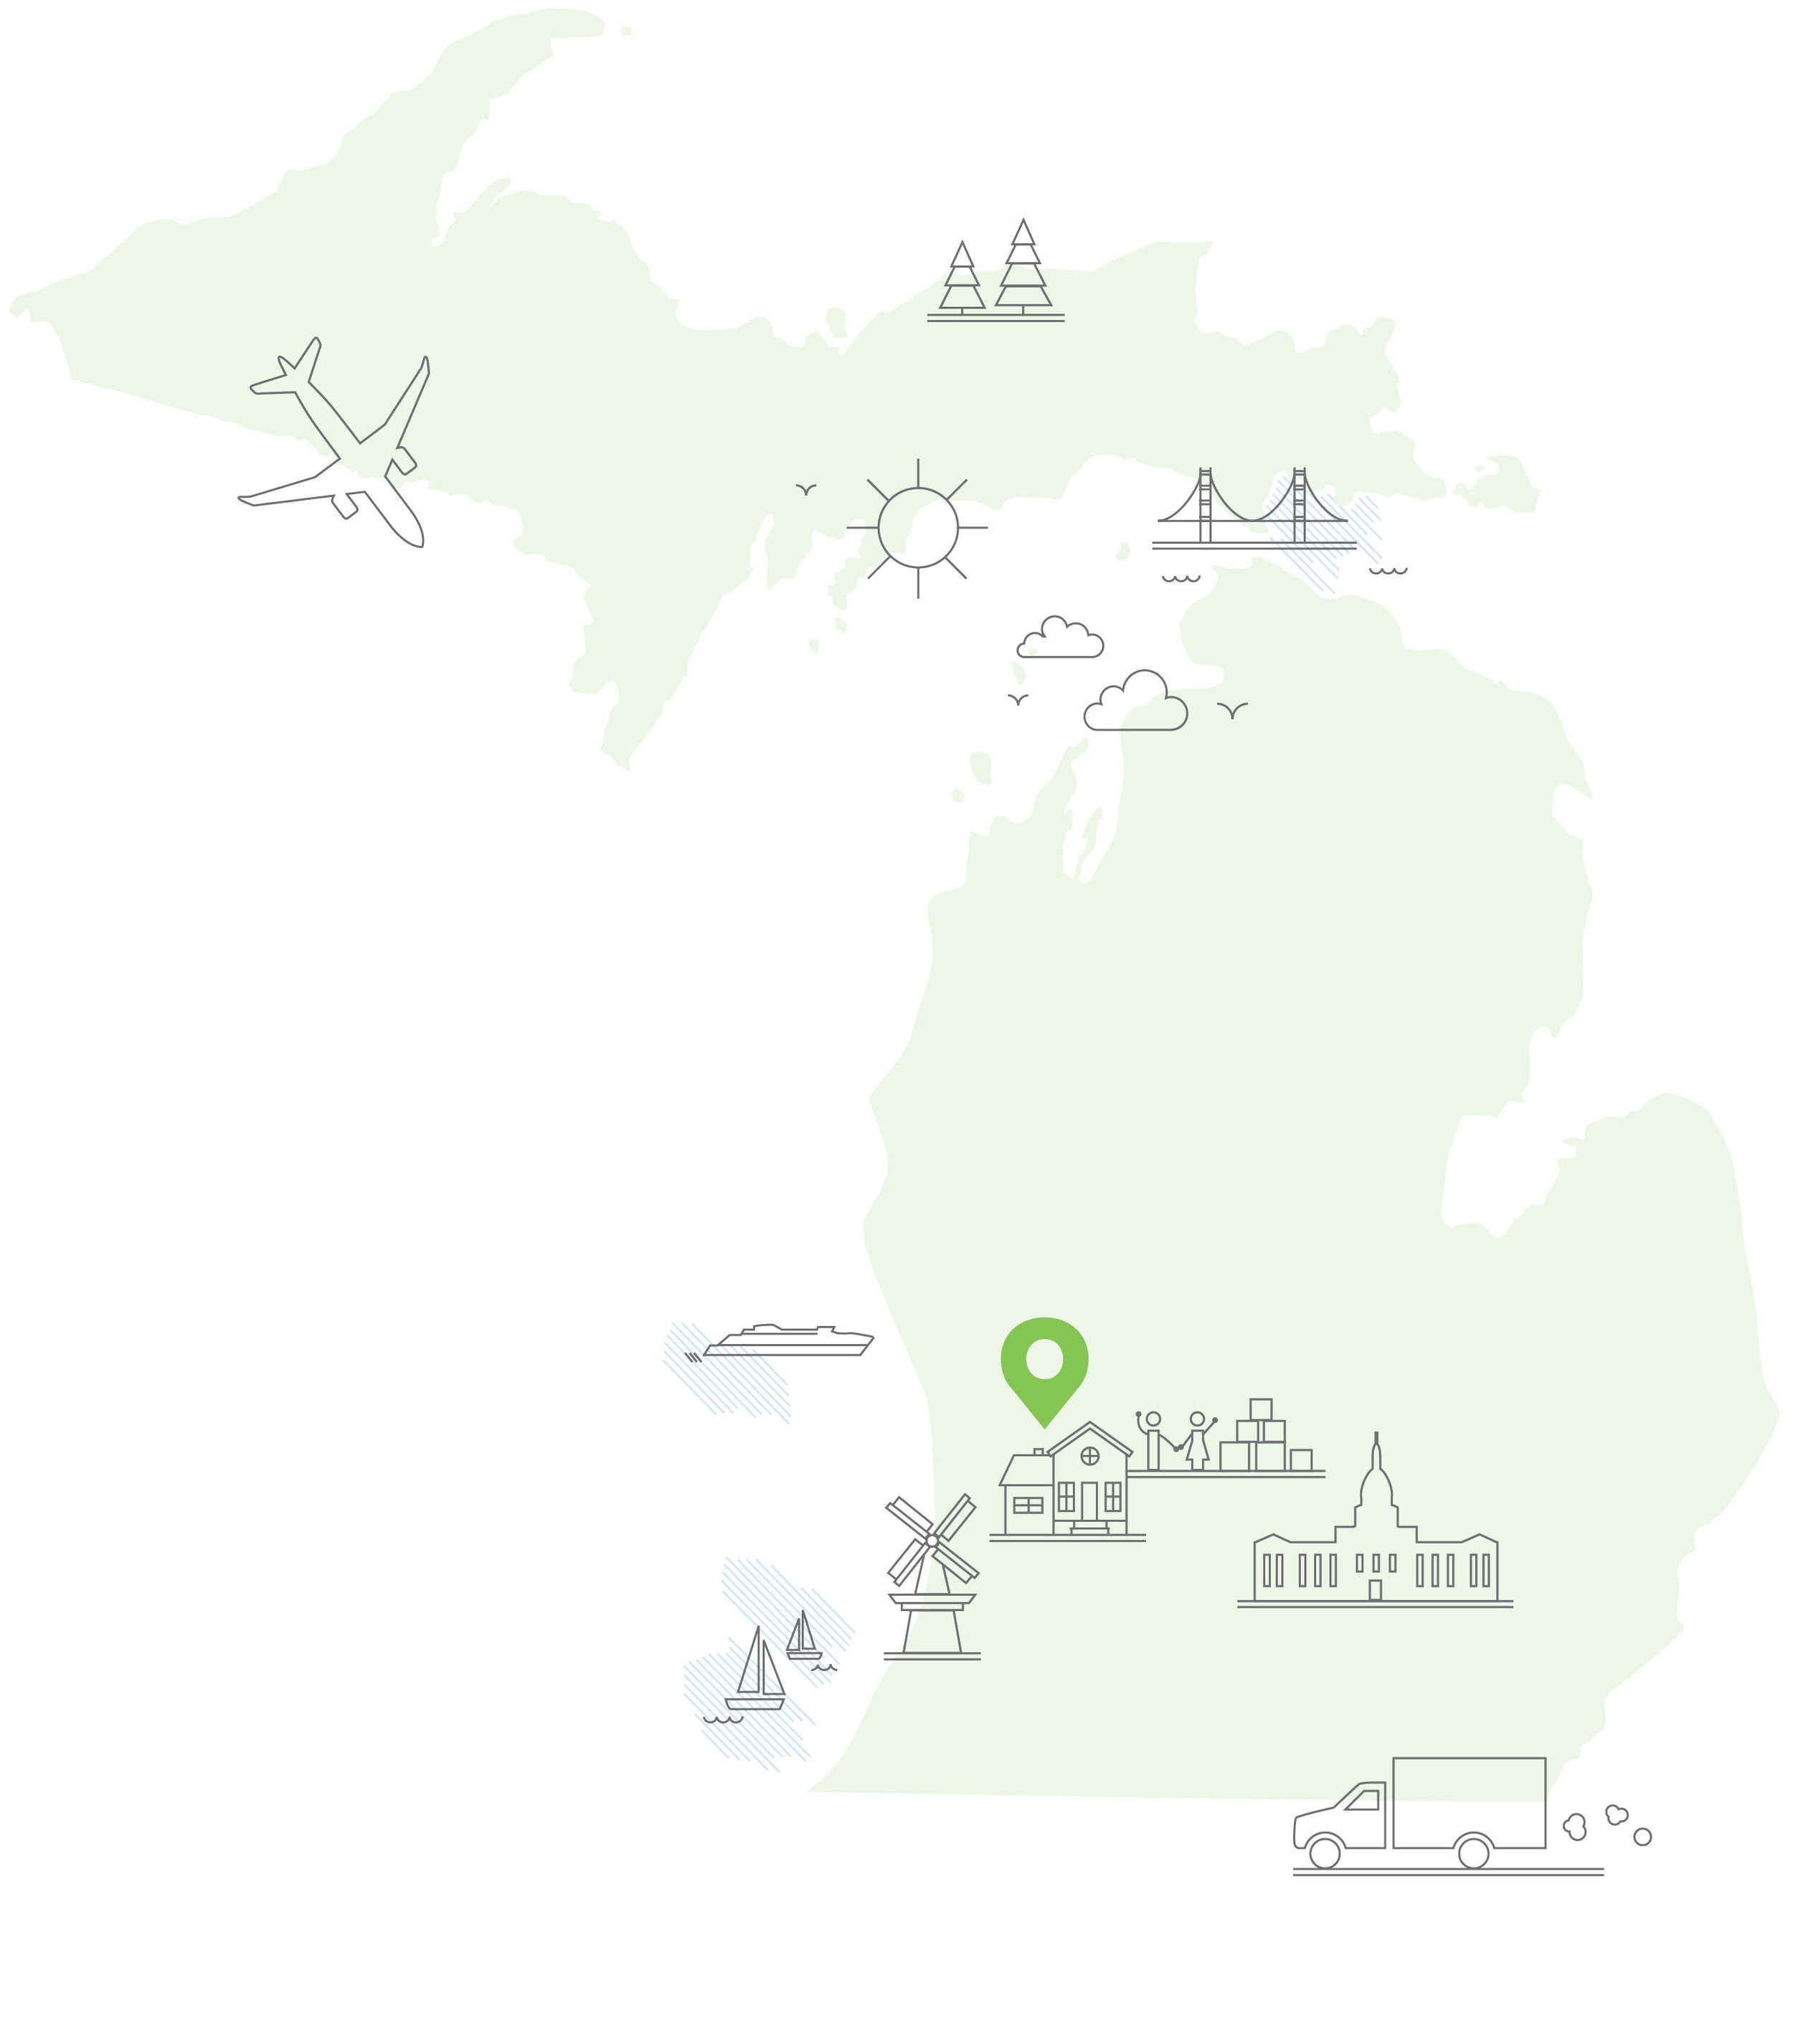 PROVIDING LOCAL DESTINATION SERVICES IN THE GRAND RAPIDS & Lakeshore COMMUNITies -